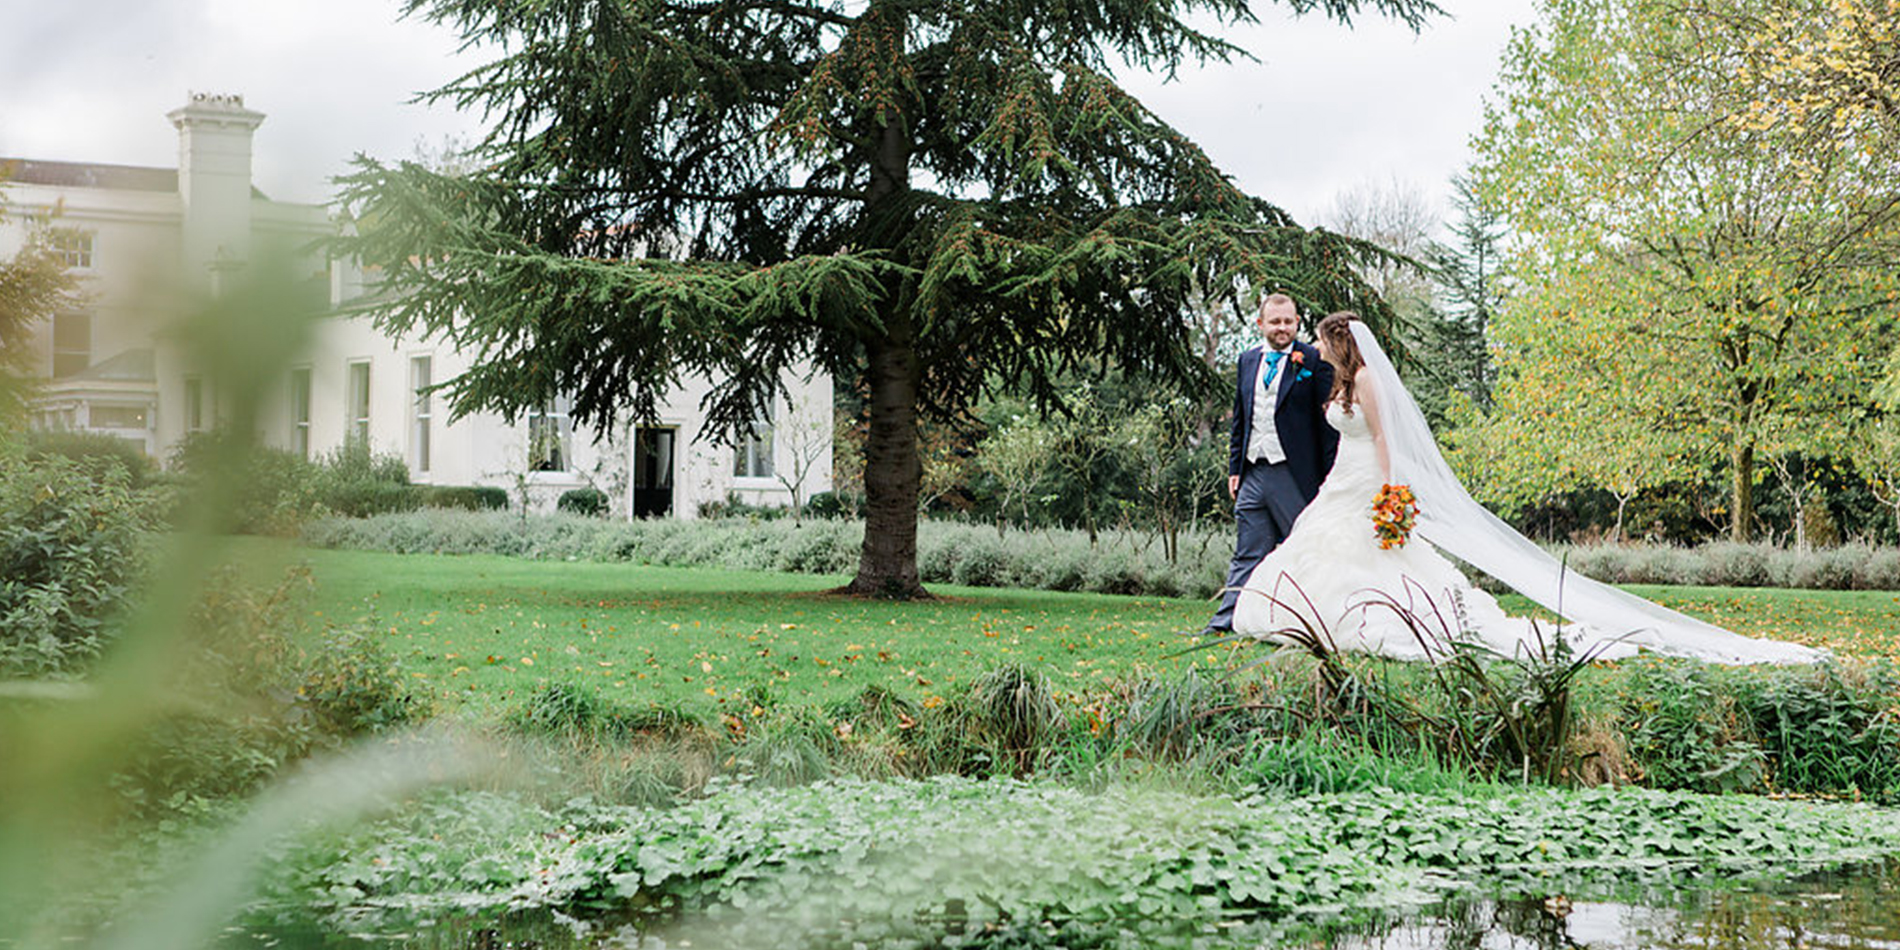 The happy newlyweds go for a stroll through the gardens at their Country House wedding in London